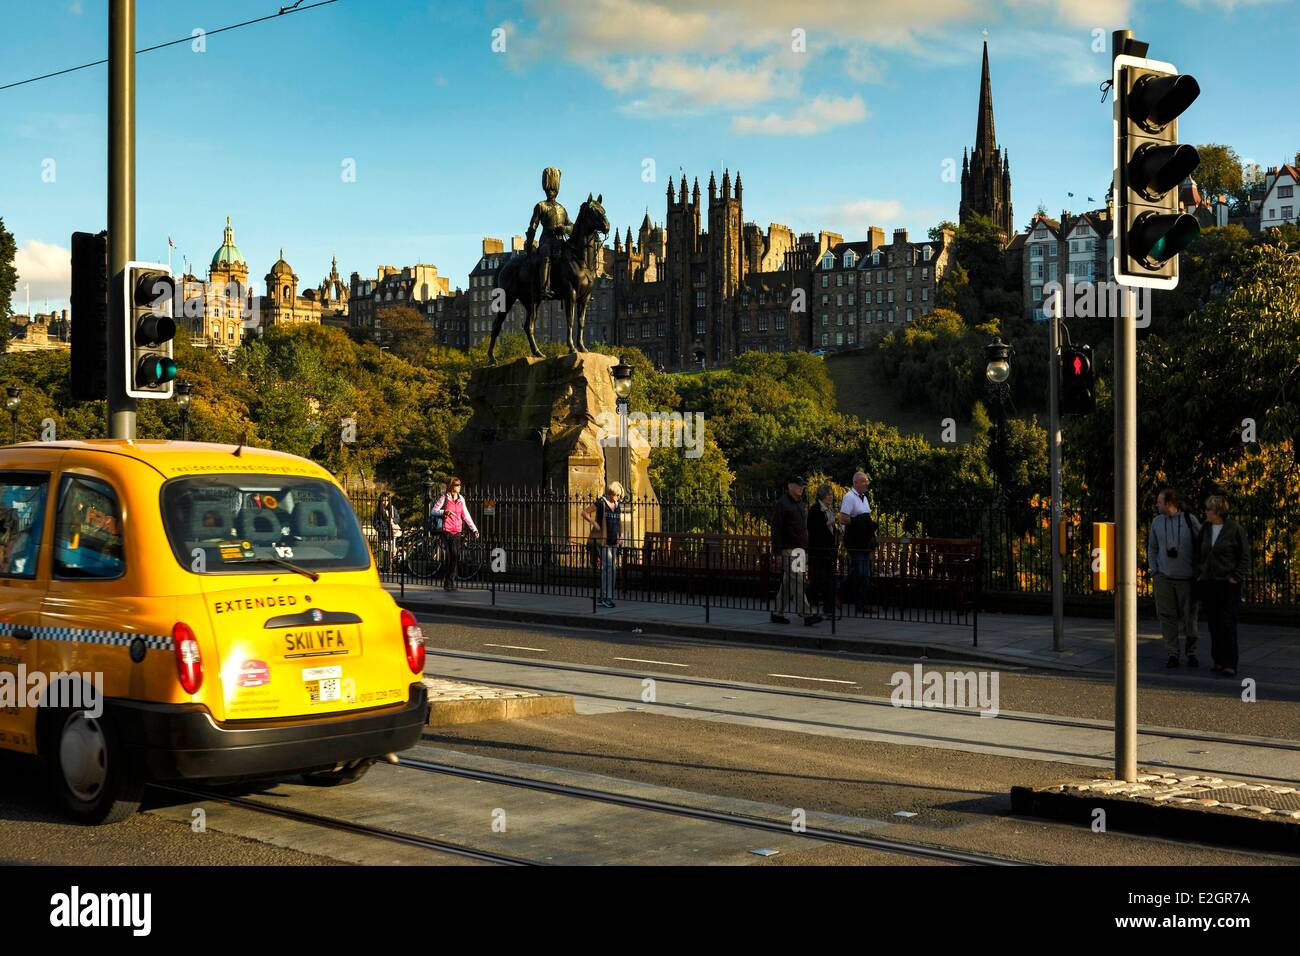 United Kingdom Scotland Edinburg Princes Street traffic and pedestrians on main street with a view of St Giles Cathedral - Stock Image